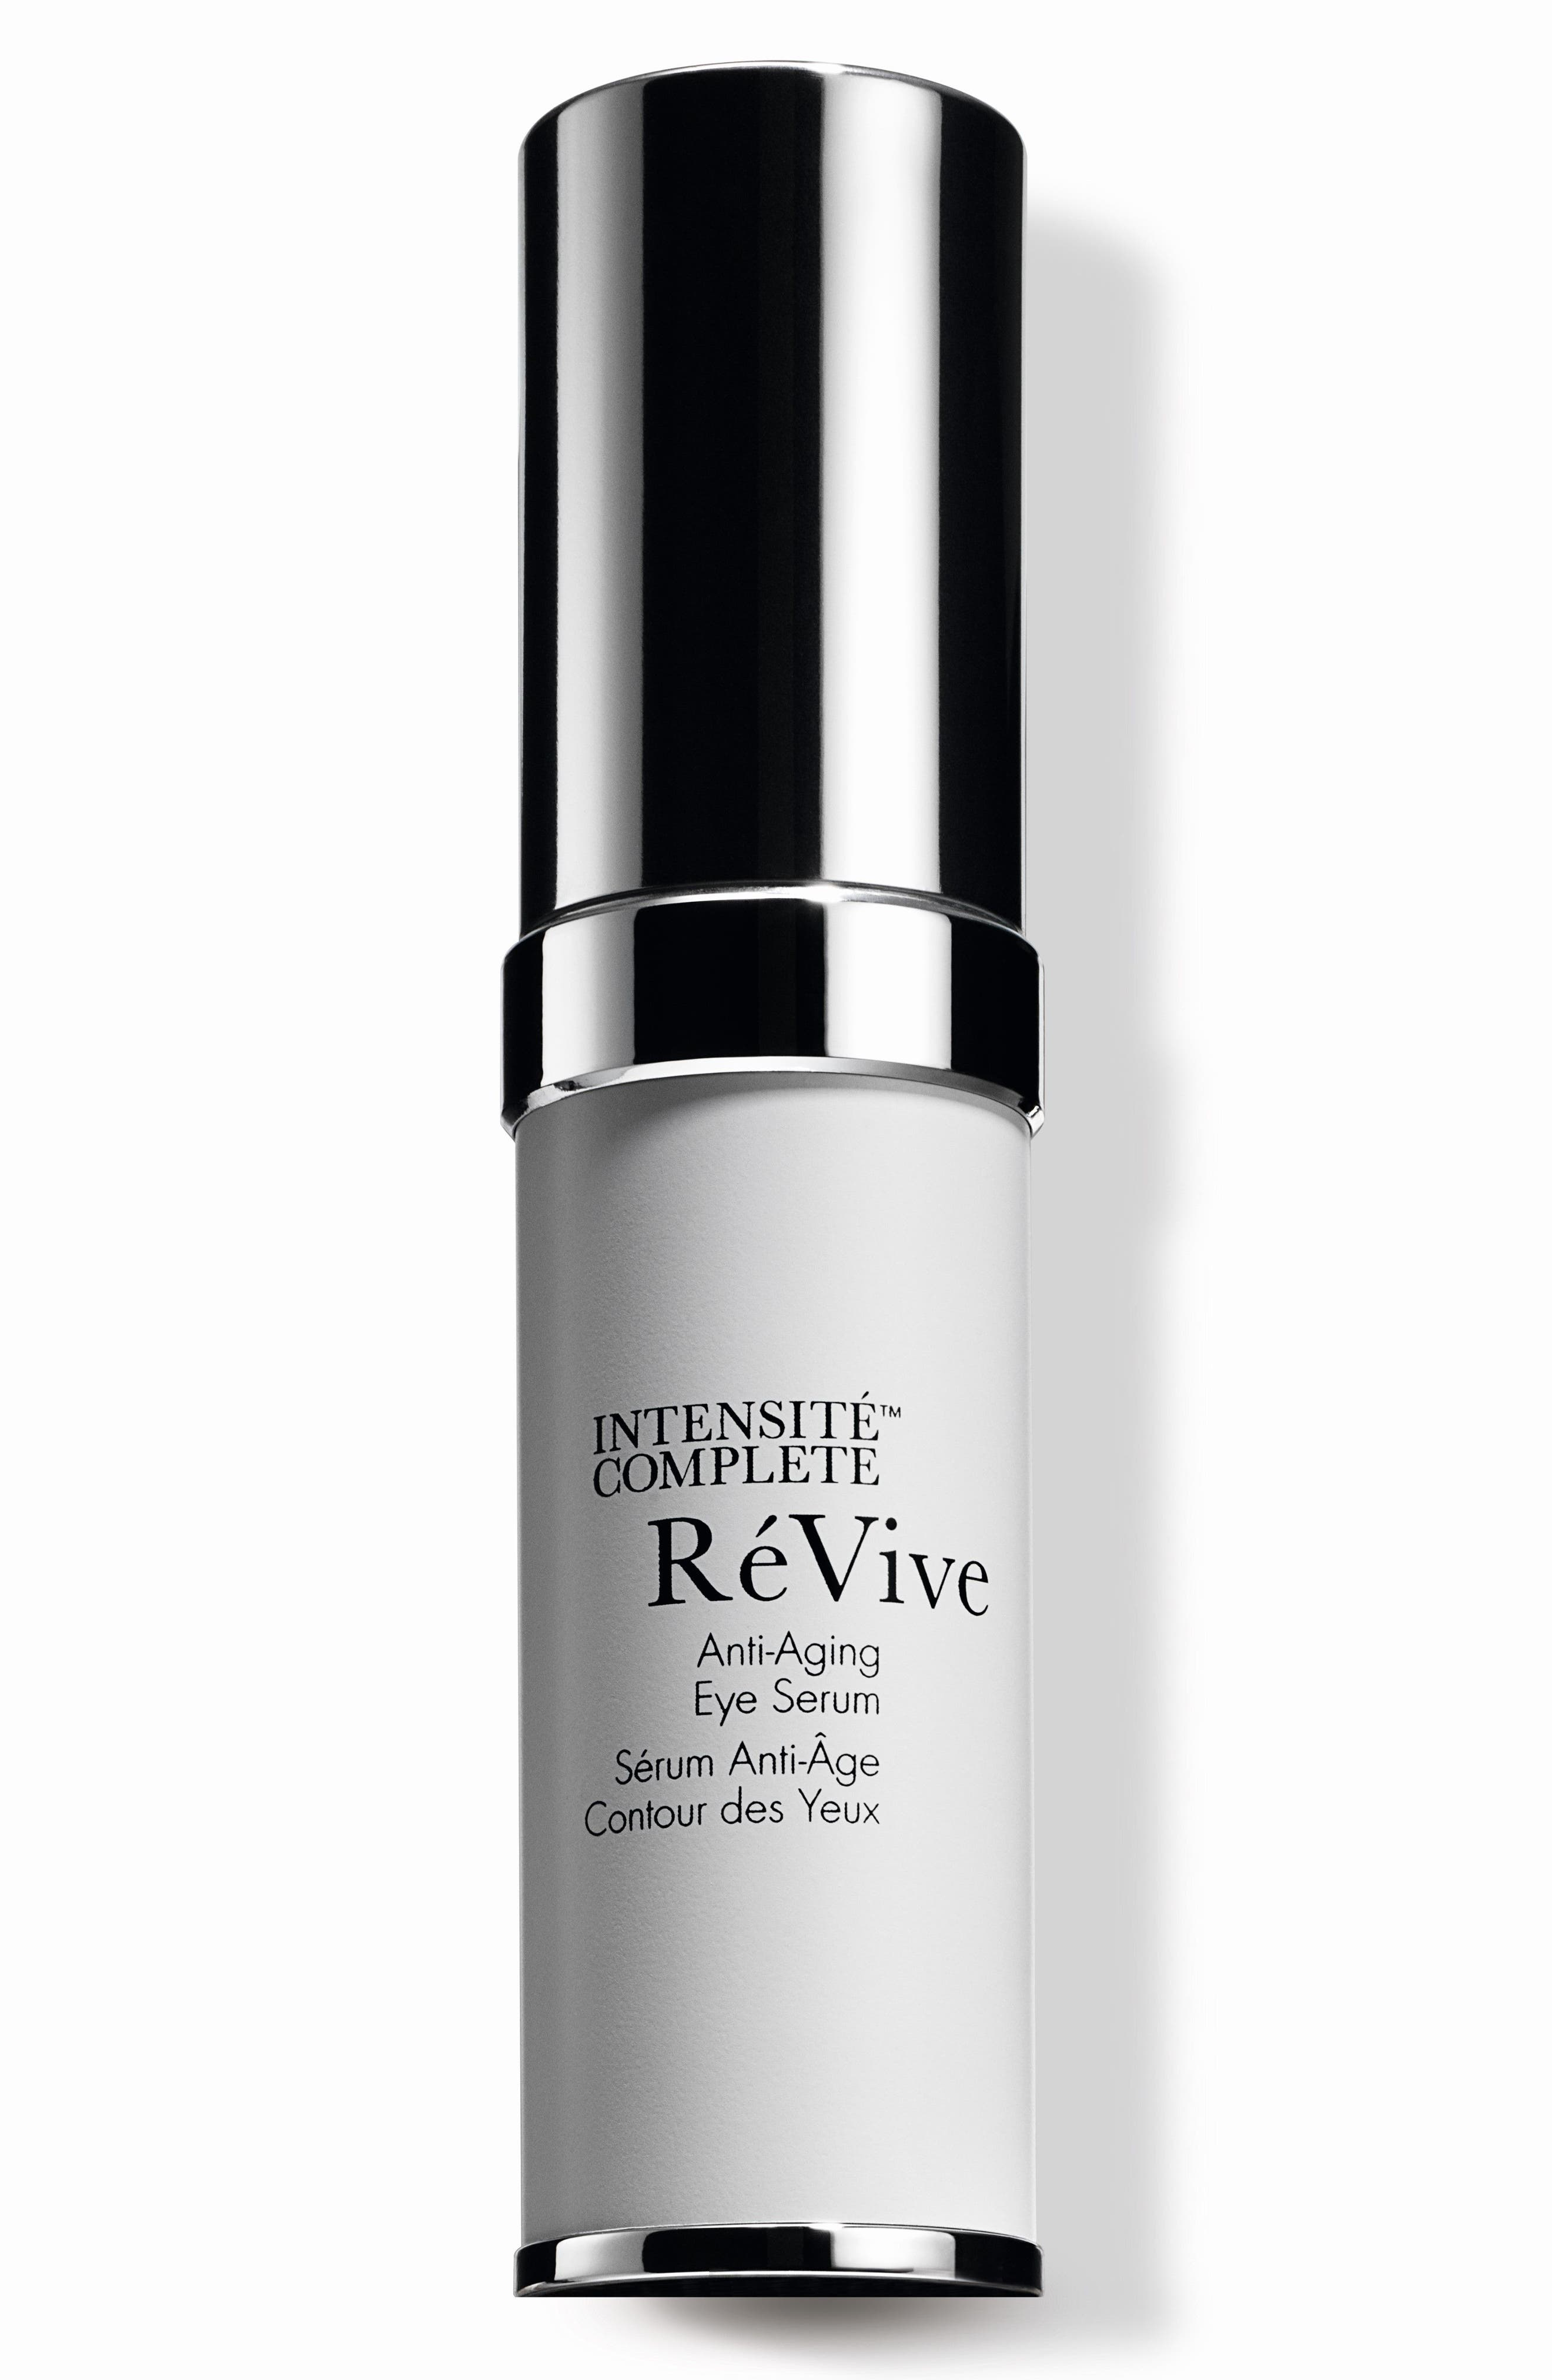 RéVive® Intensité Complete Anti-Aging Eye Serum